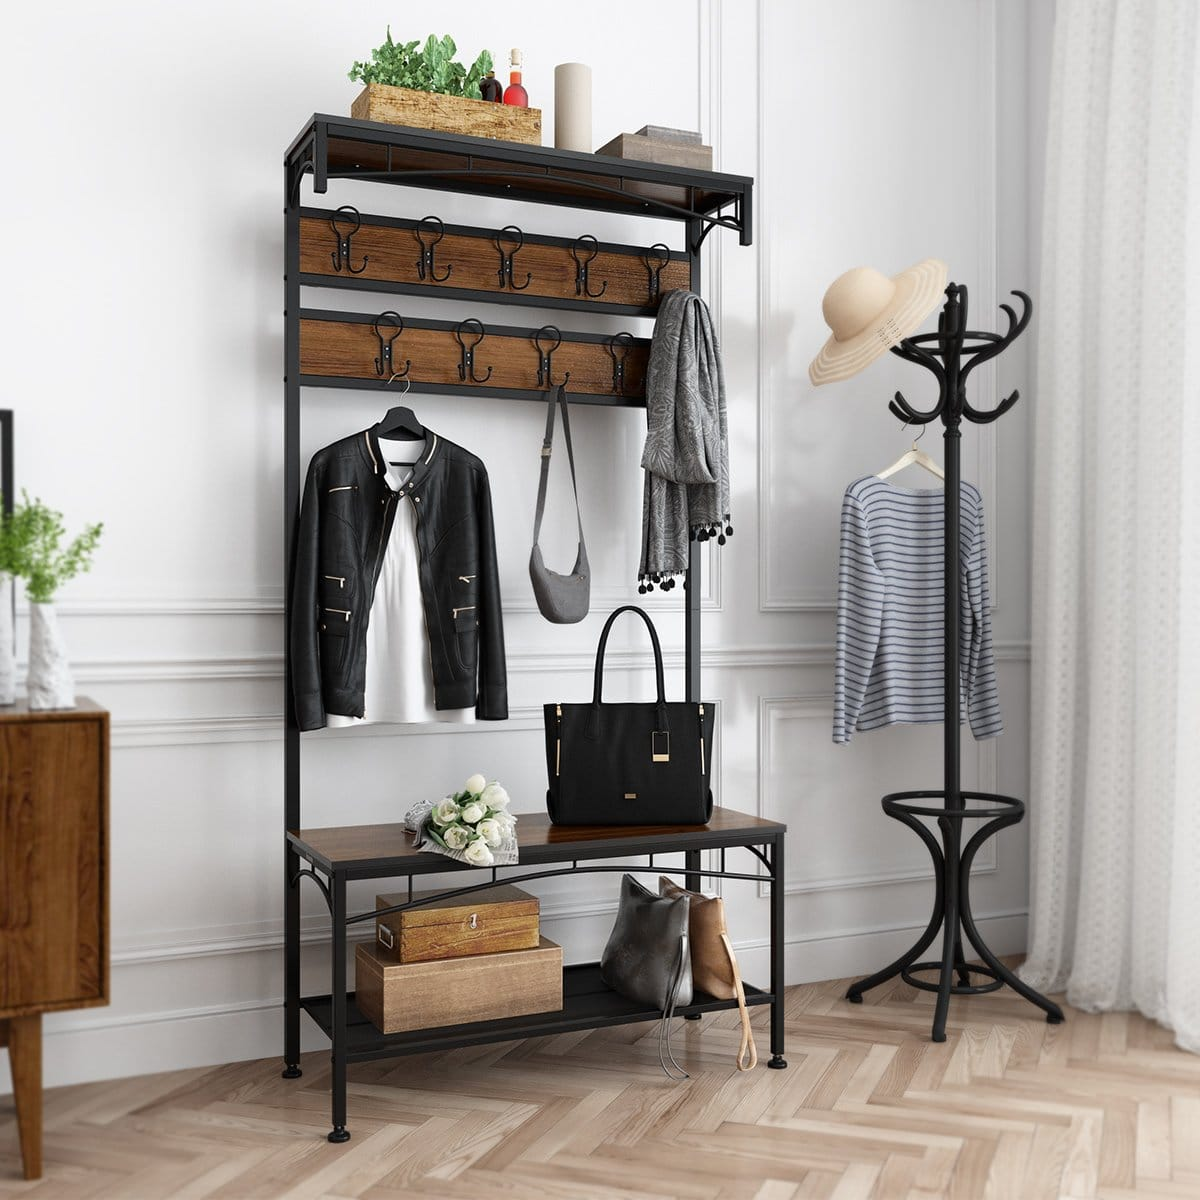 Top 10 Best Coat Rack with Shoe Bench in 2019 Reviews